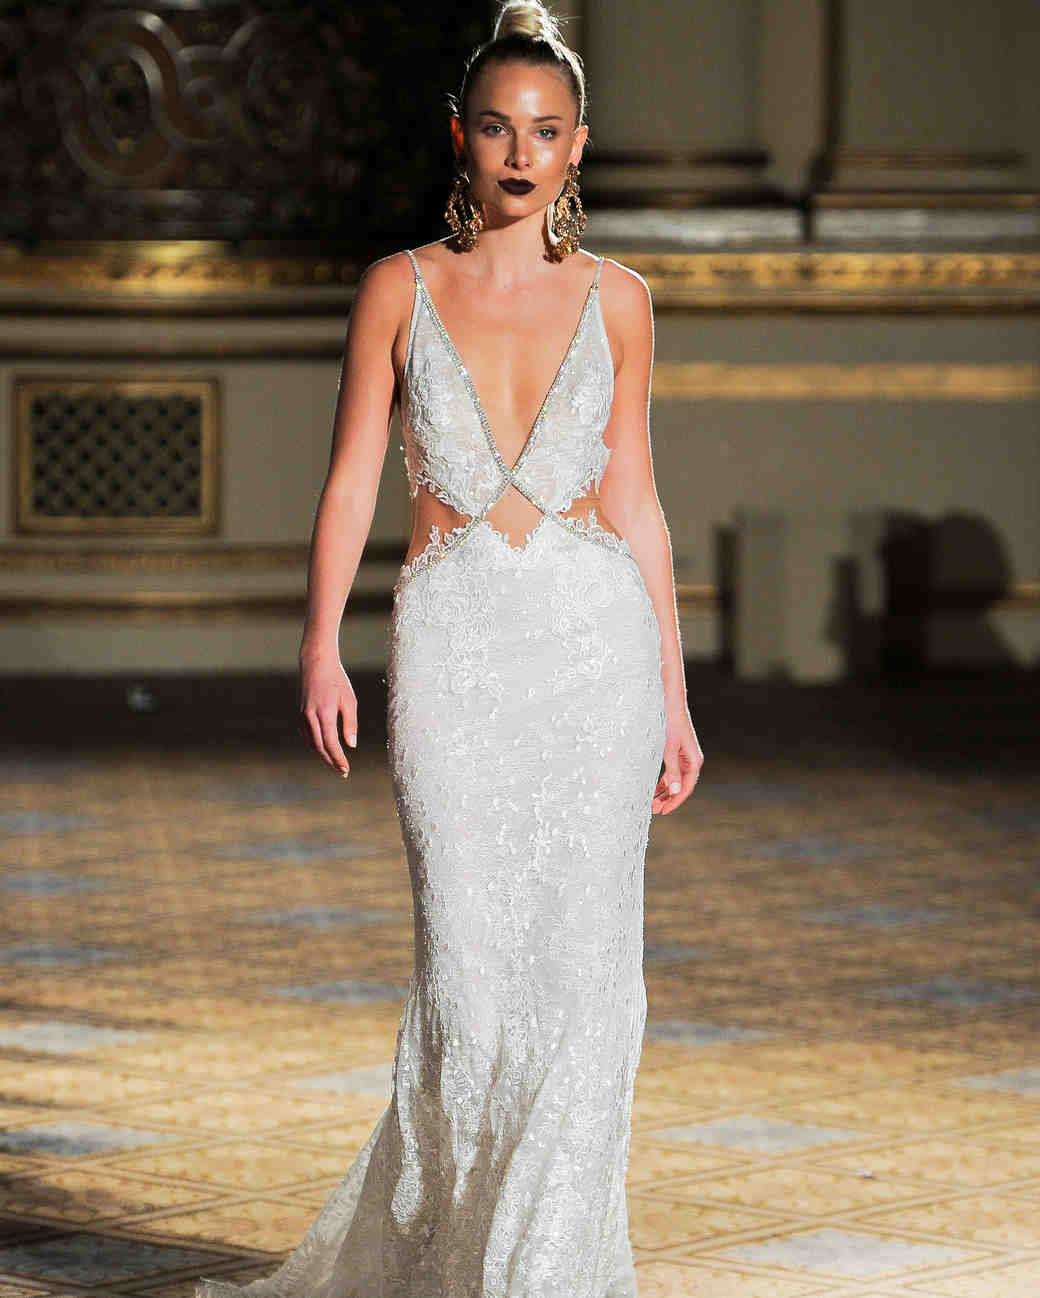 Honeymoon Clothes For Bride: Sexy Wedding Dresses For Brides Who Want To Turn Heads